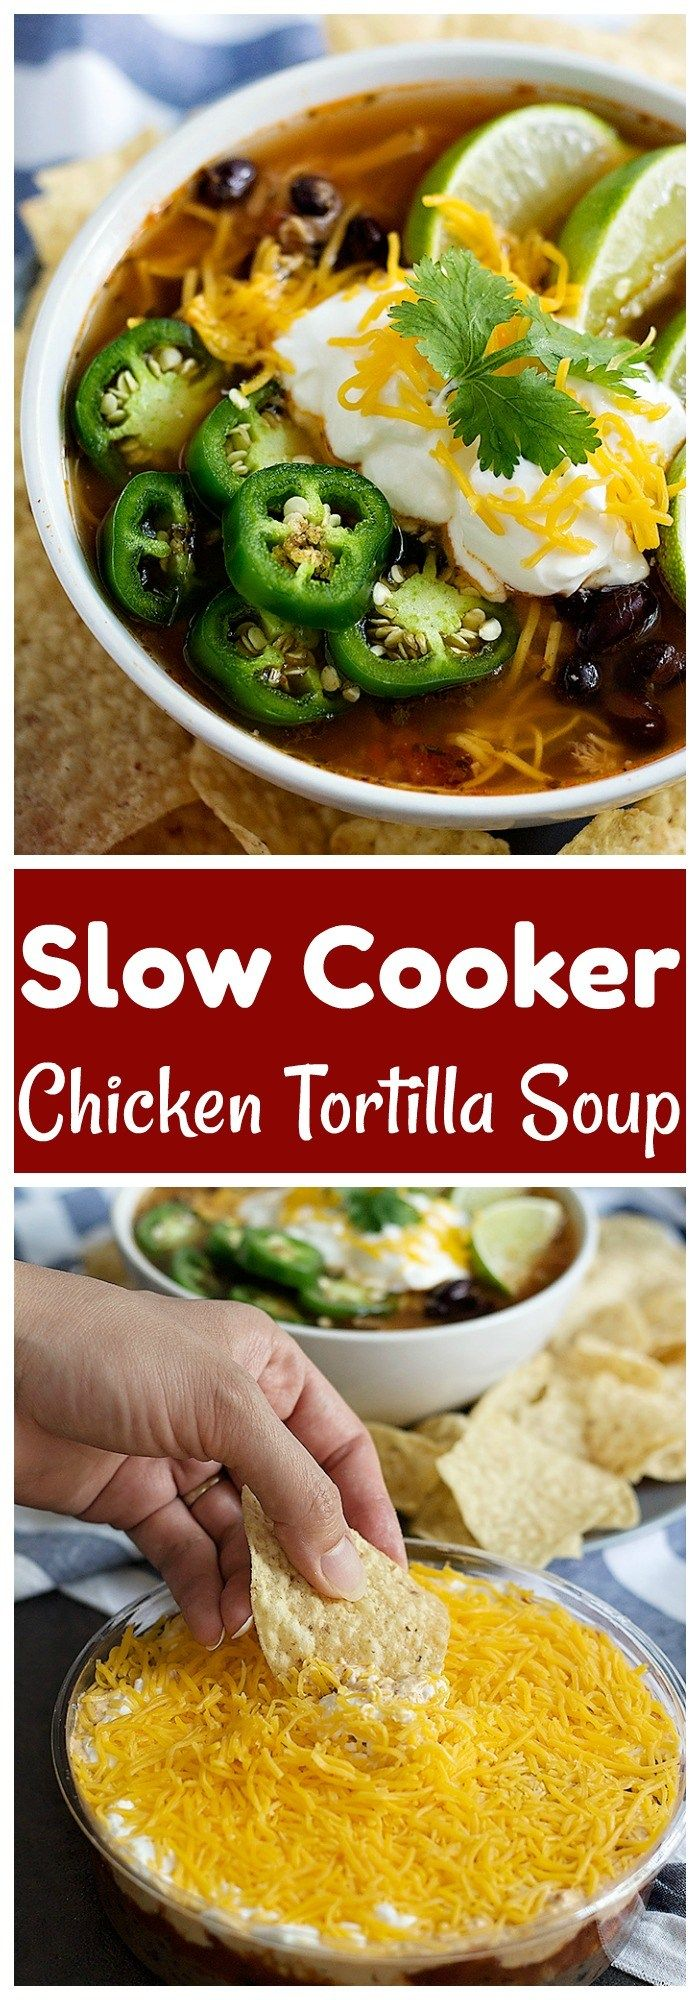 Slow Cooker Chicken Tortilla Soup is the ultimate comfort food for any day of the week! It's so easy to make and is packed with flavors!